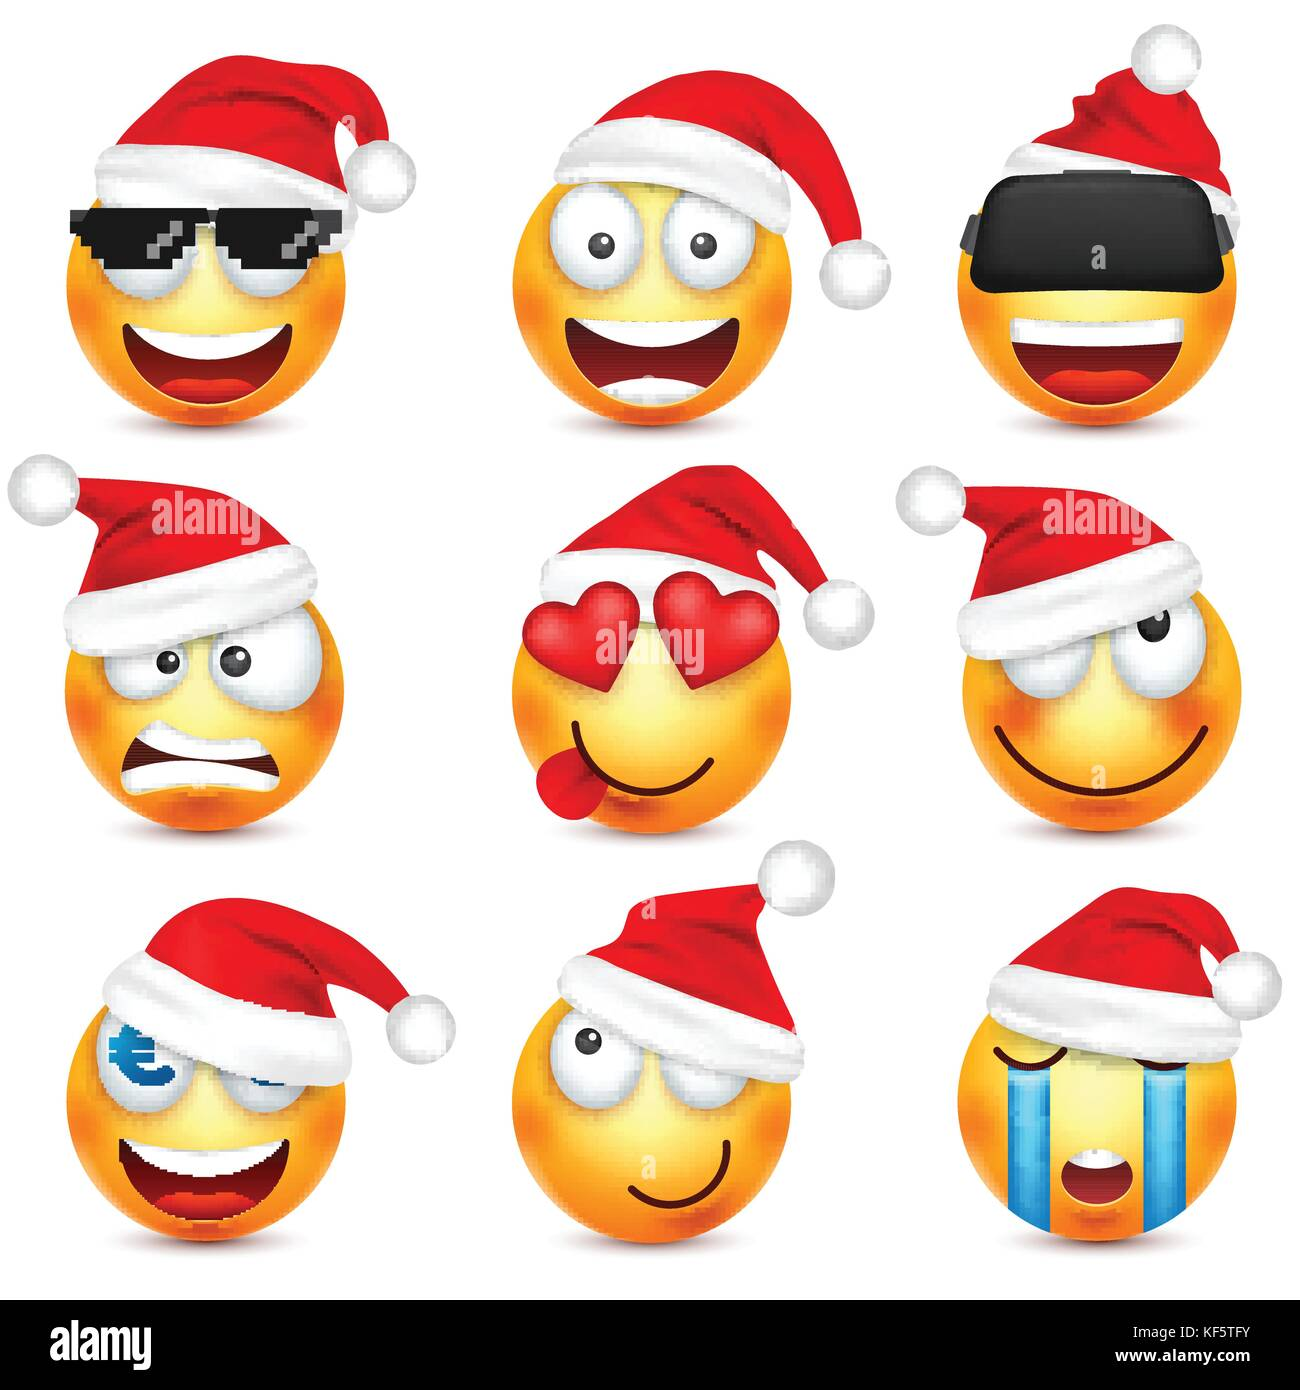 yellow face with emotions and christmas hat new year santawinter emoji sadhappyangry facesfunny cartoon charactermood vector